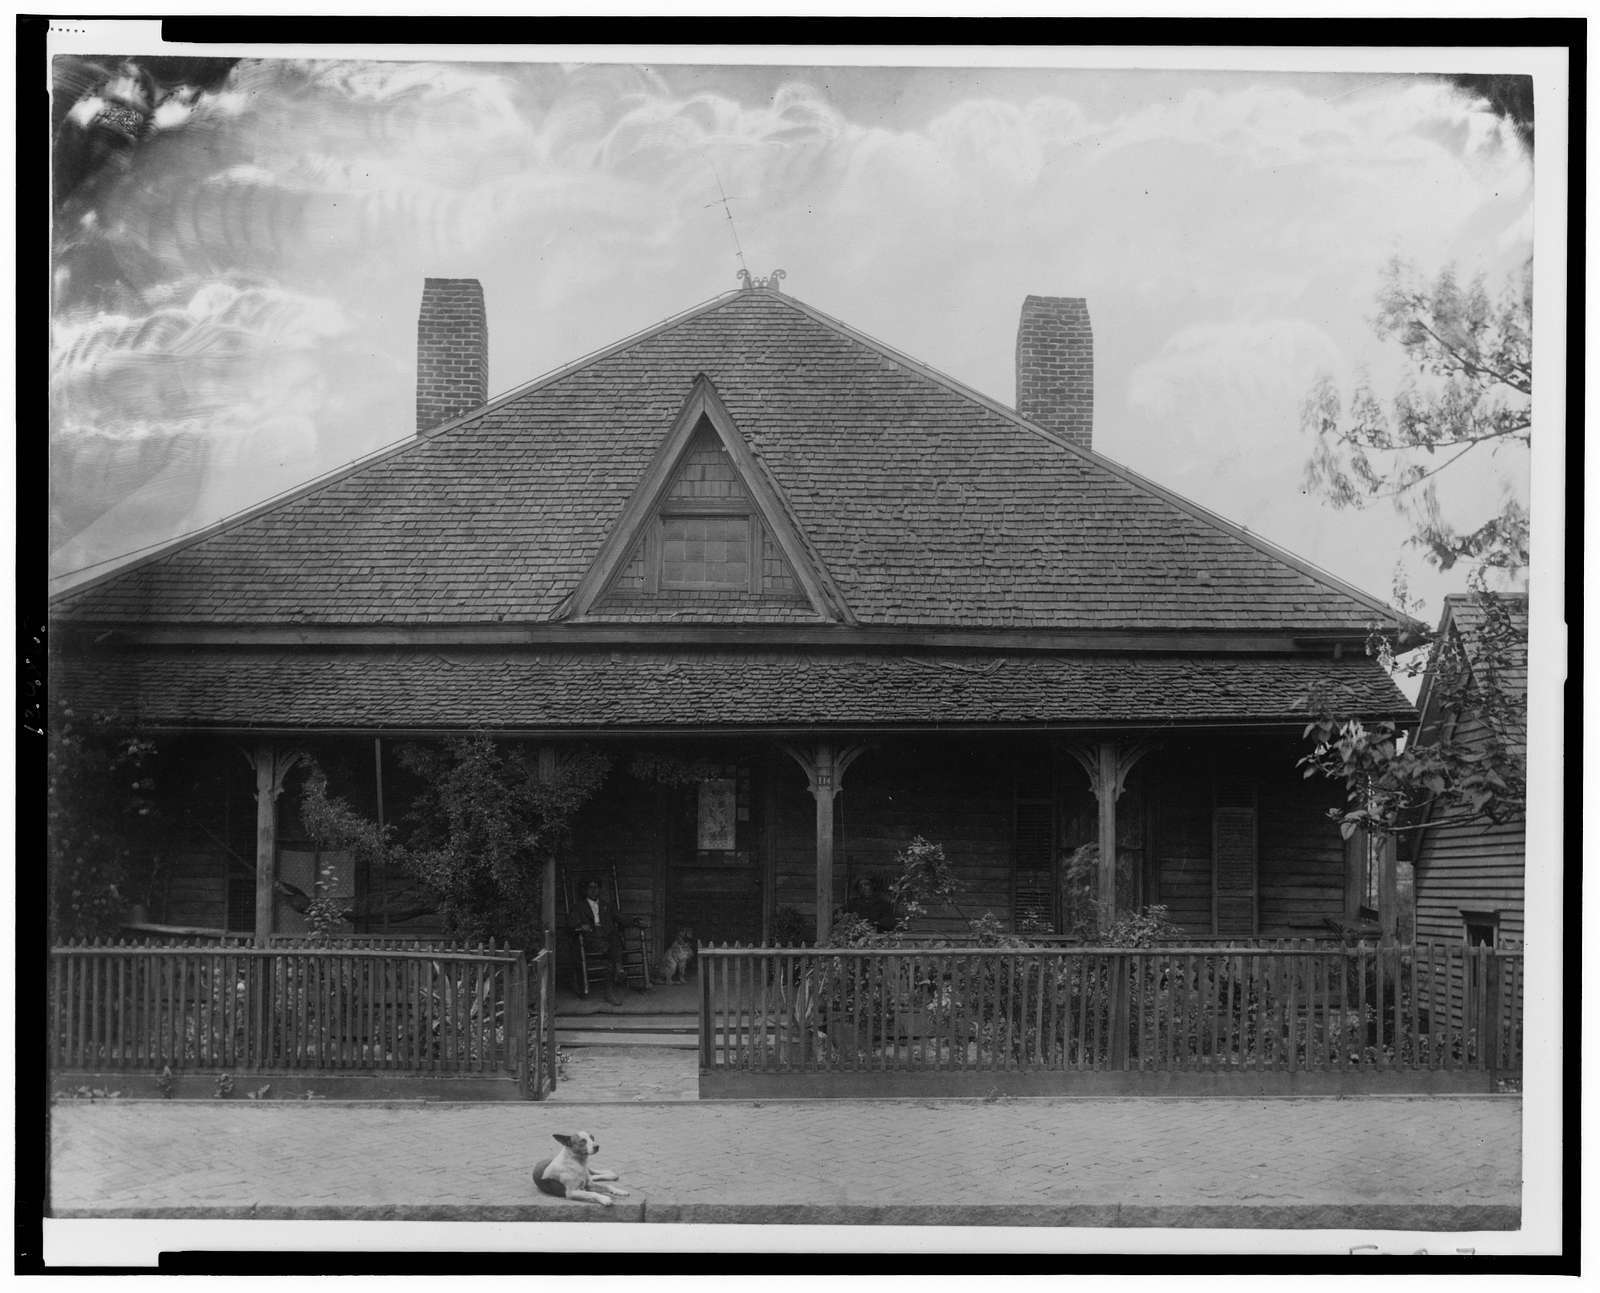 [Exterior view of house with picket fence, man and dog seated on porch and a dog lying on the sidewalk]